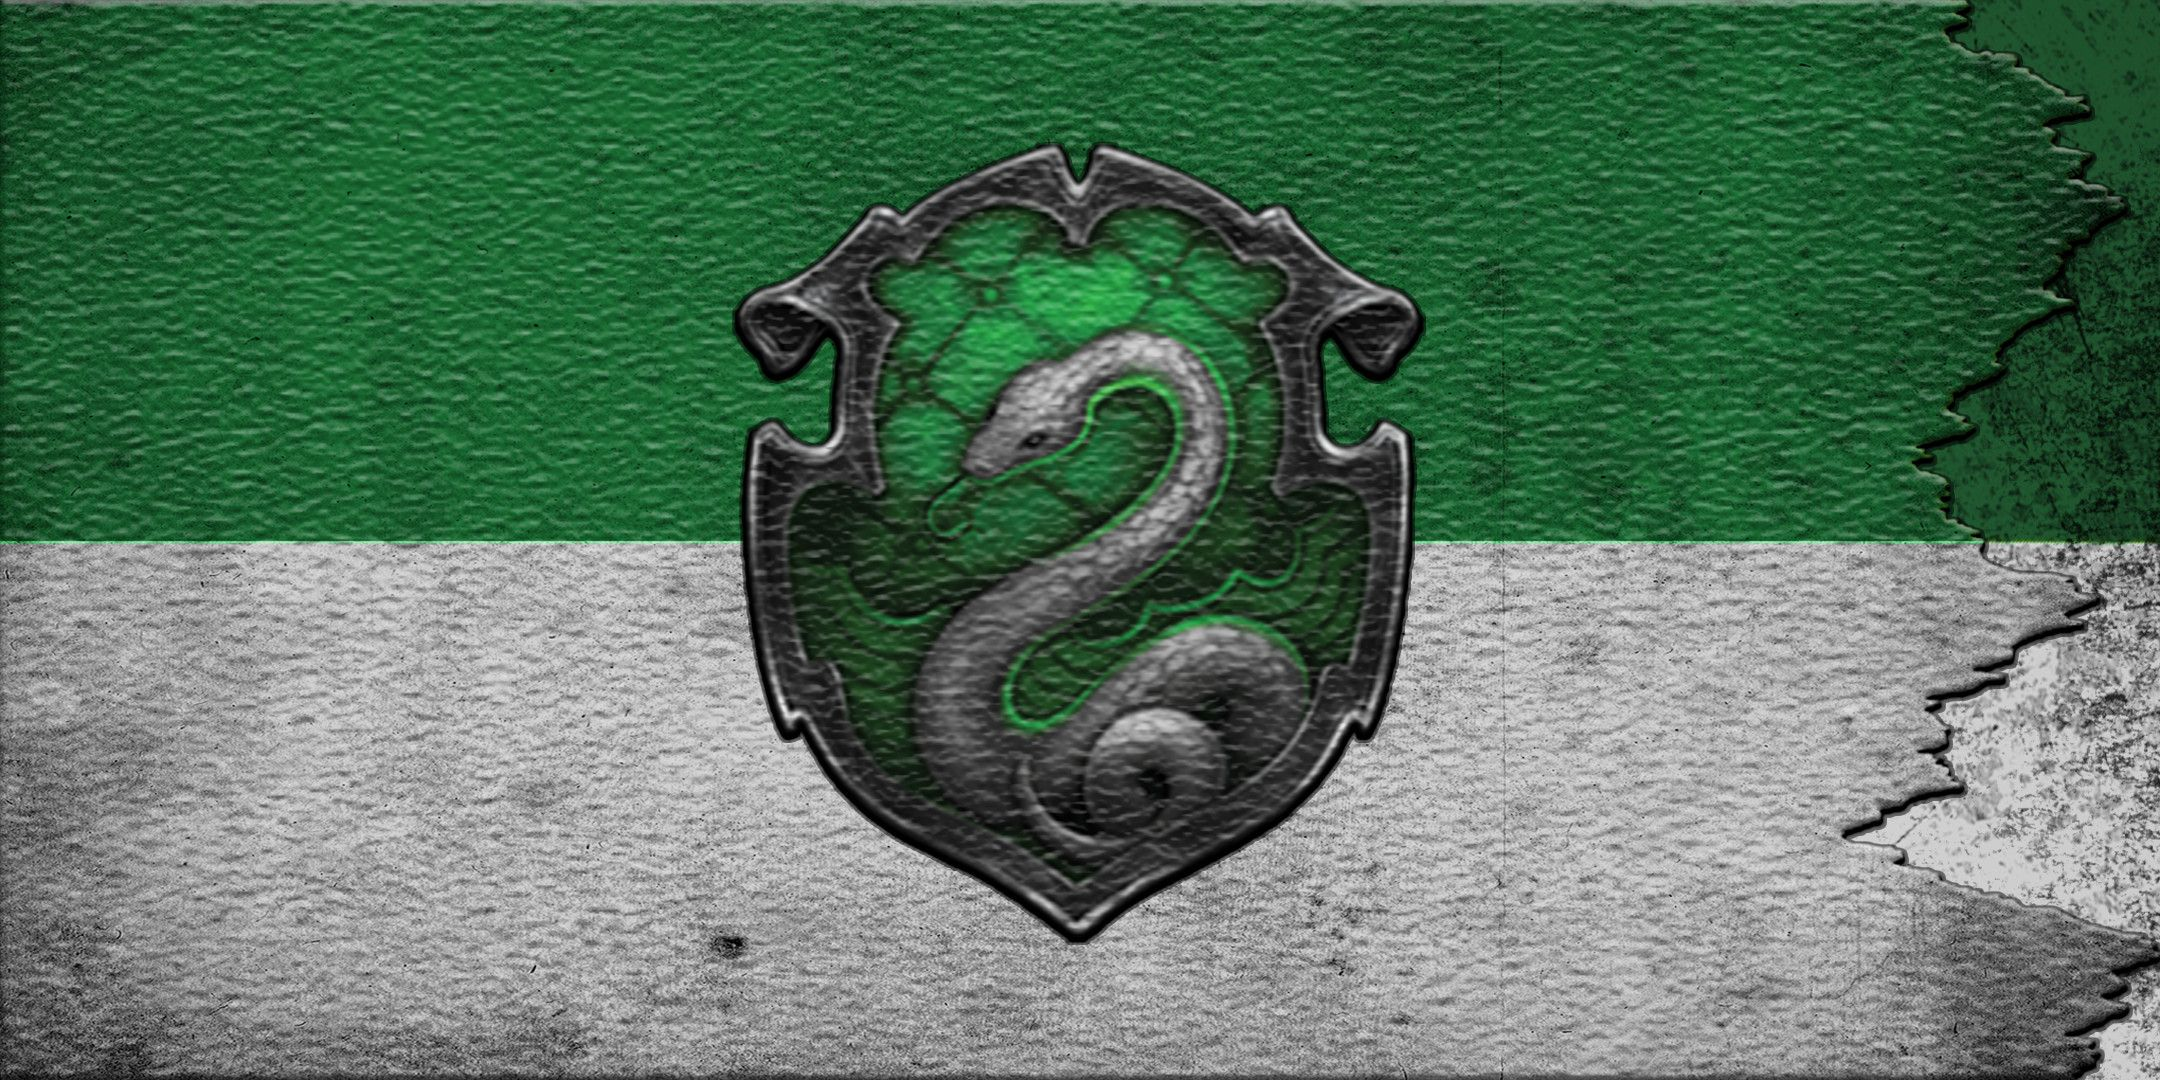 2160x1080 80+ Slytherin Iphone Wallpapers on WallpaperPlay